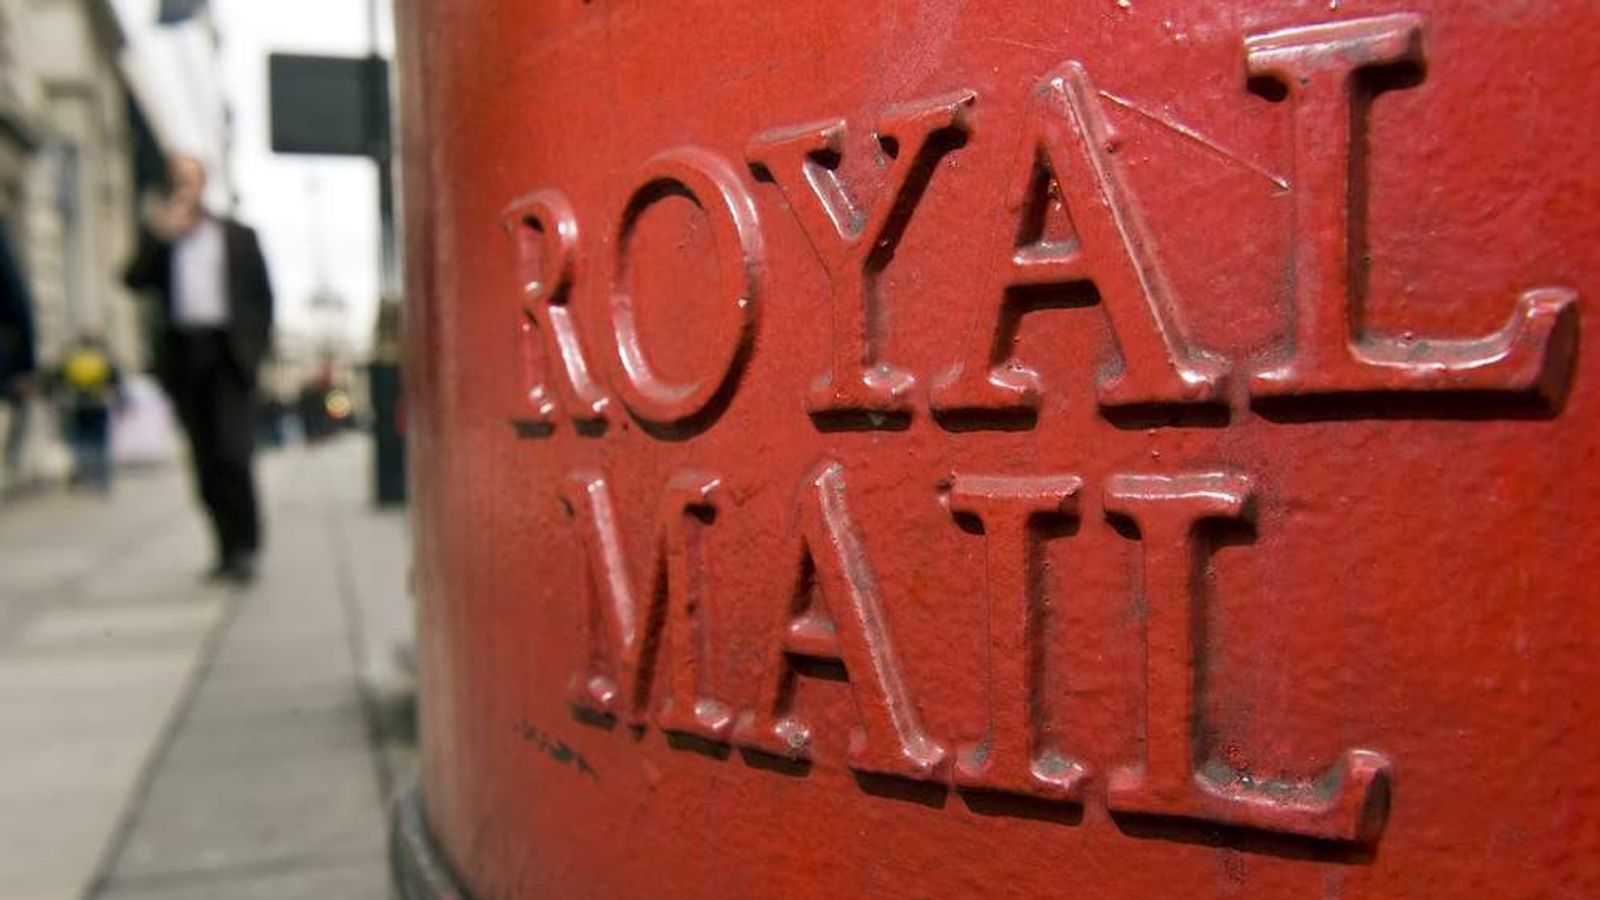 A Royal Mail postbox